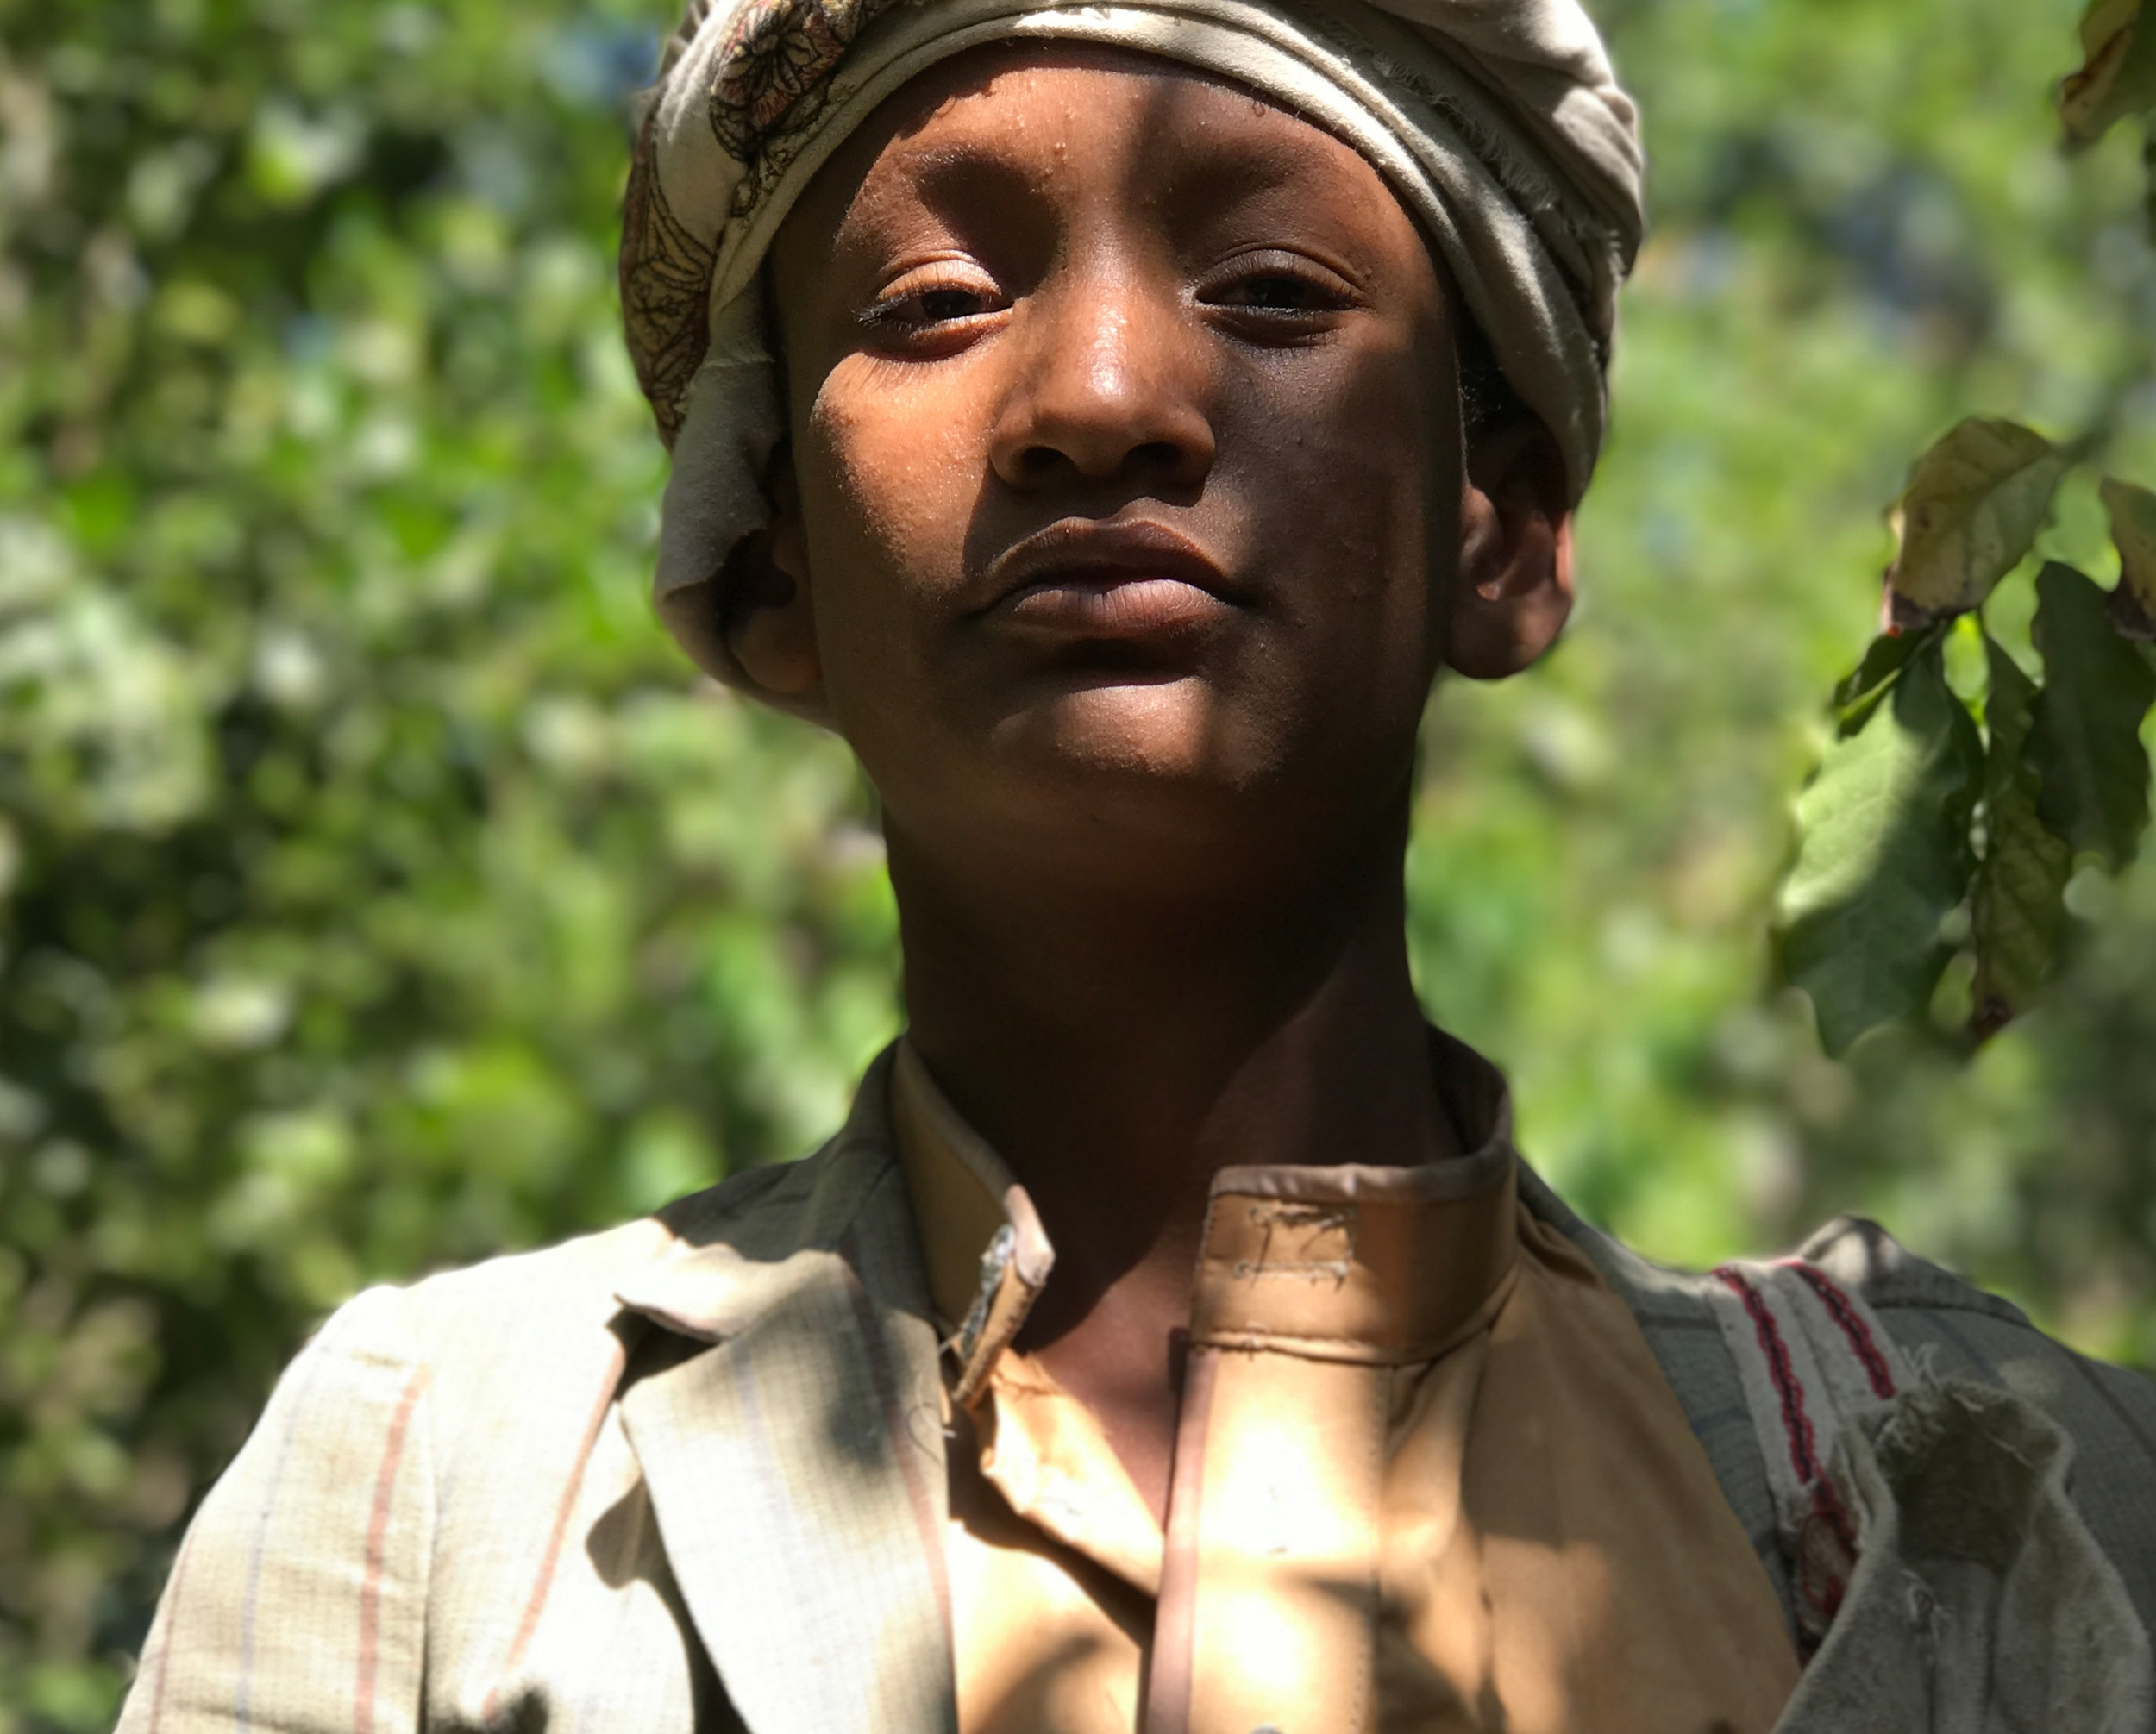 Khaild, a young coffee picker on Hammed's farm.